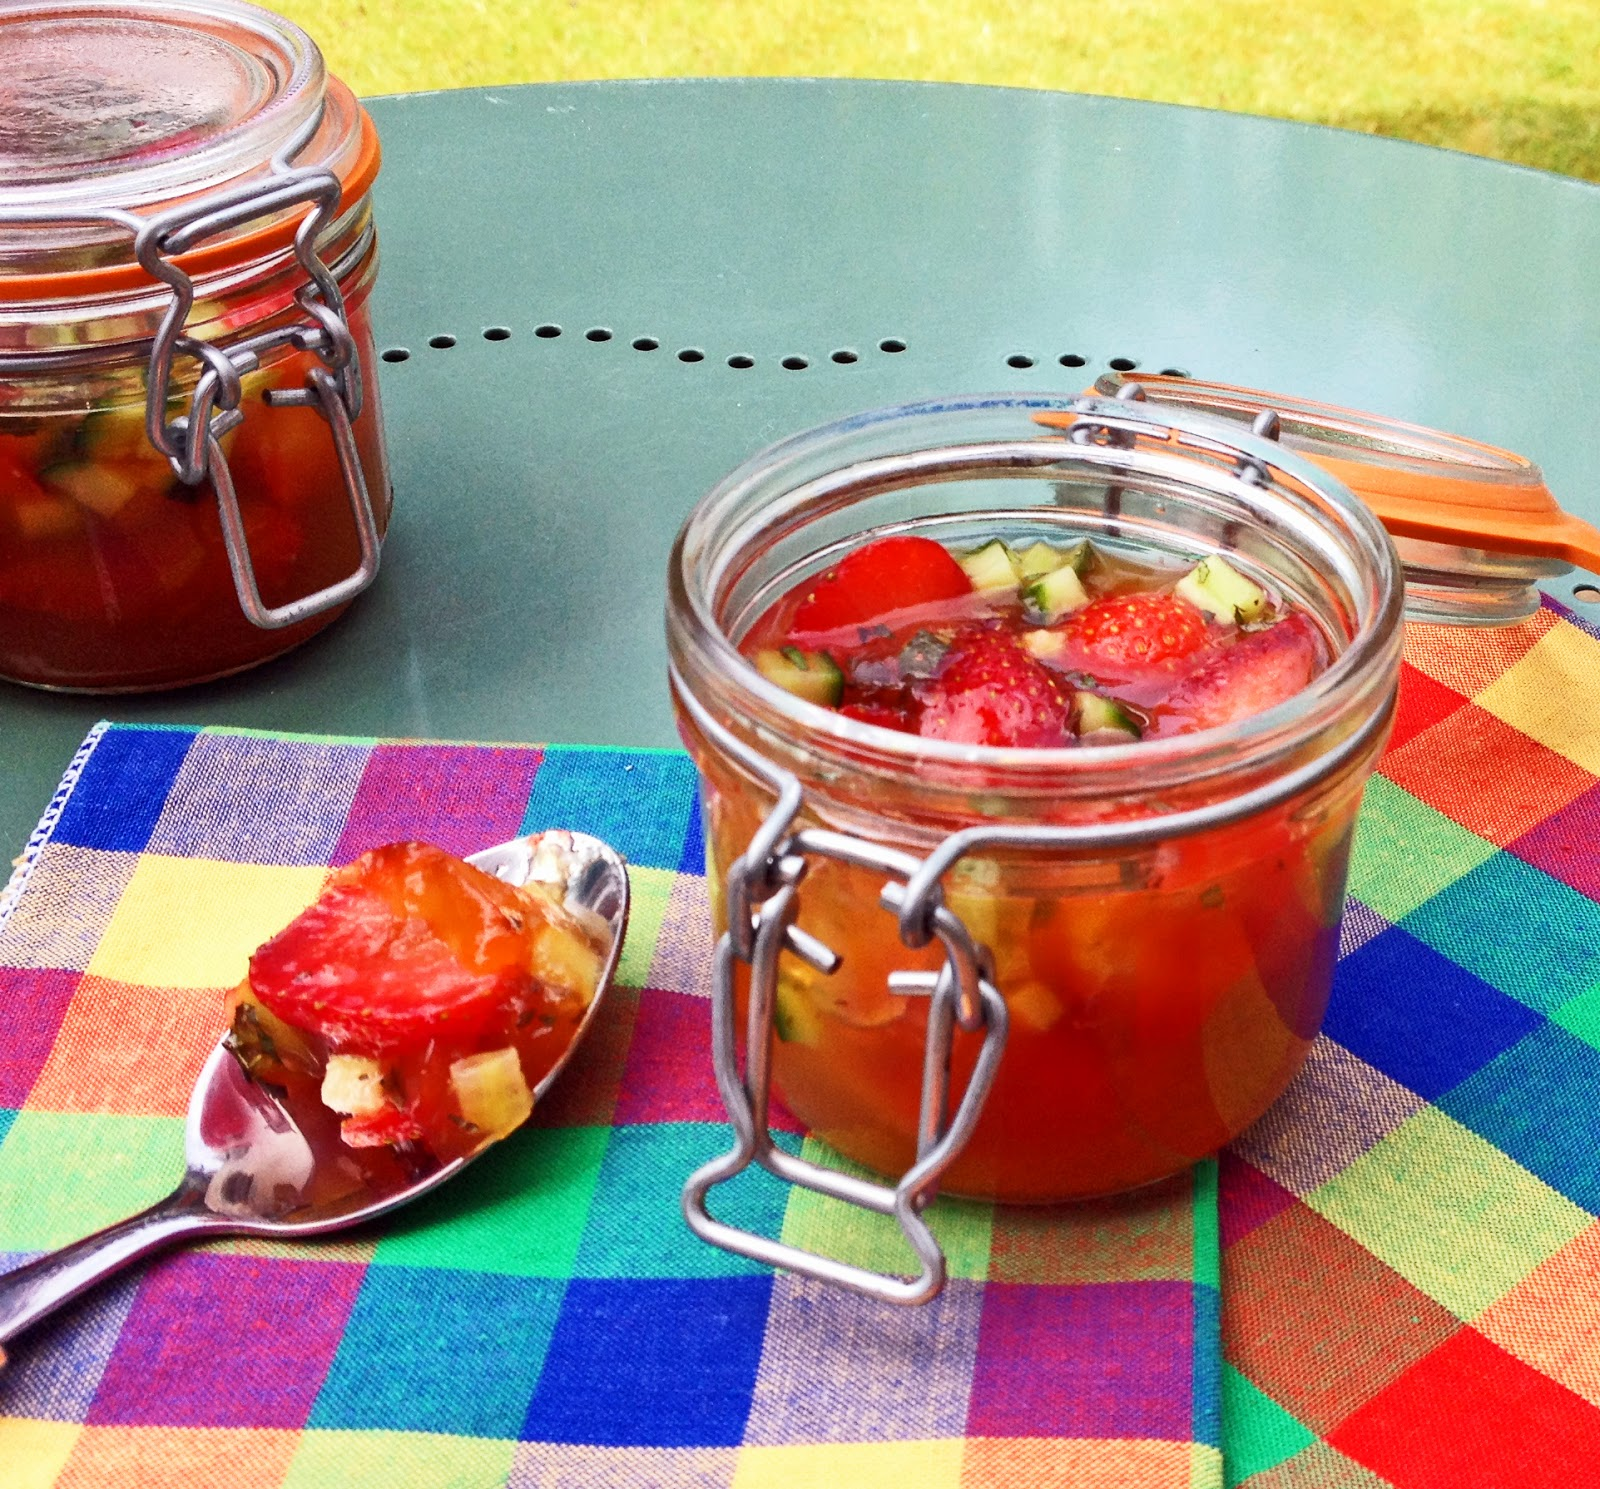 Pimms jelly jars